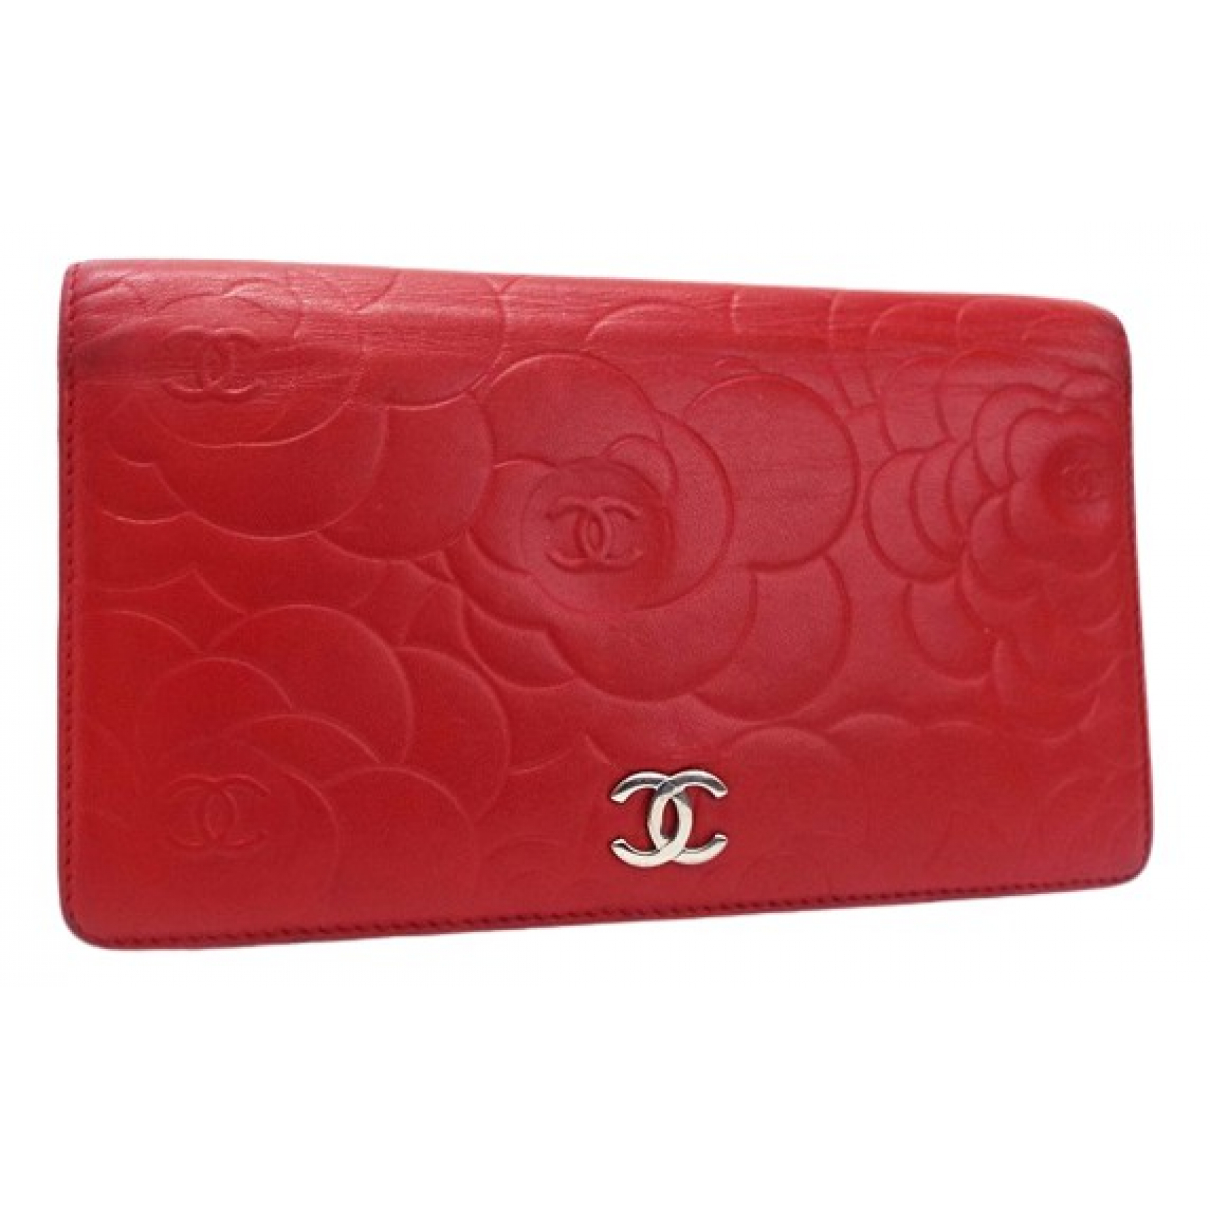 Chanel N Red Leather wallet for Women N